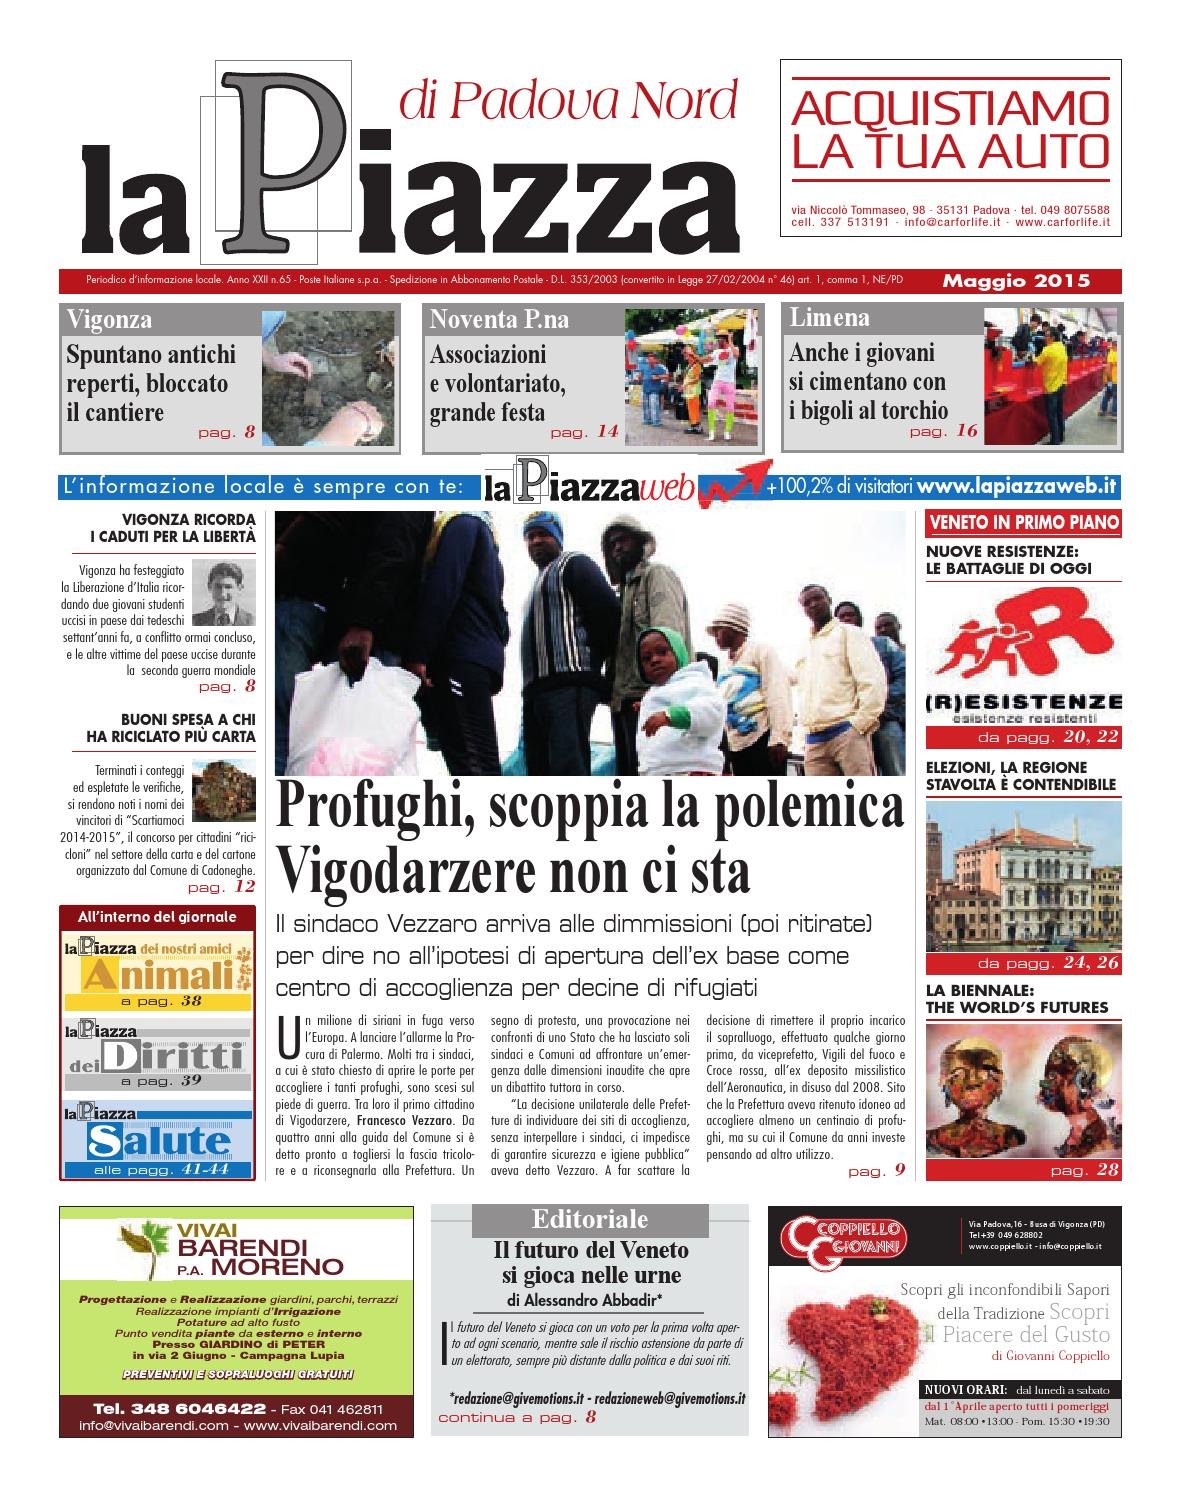 Padova nord magg2015 n65 by lapiazza give emotions - issuu bff9cd32dc72